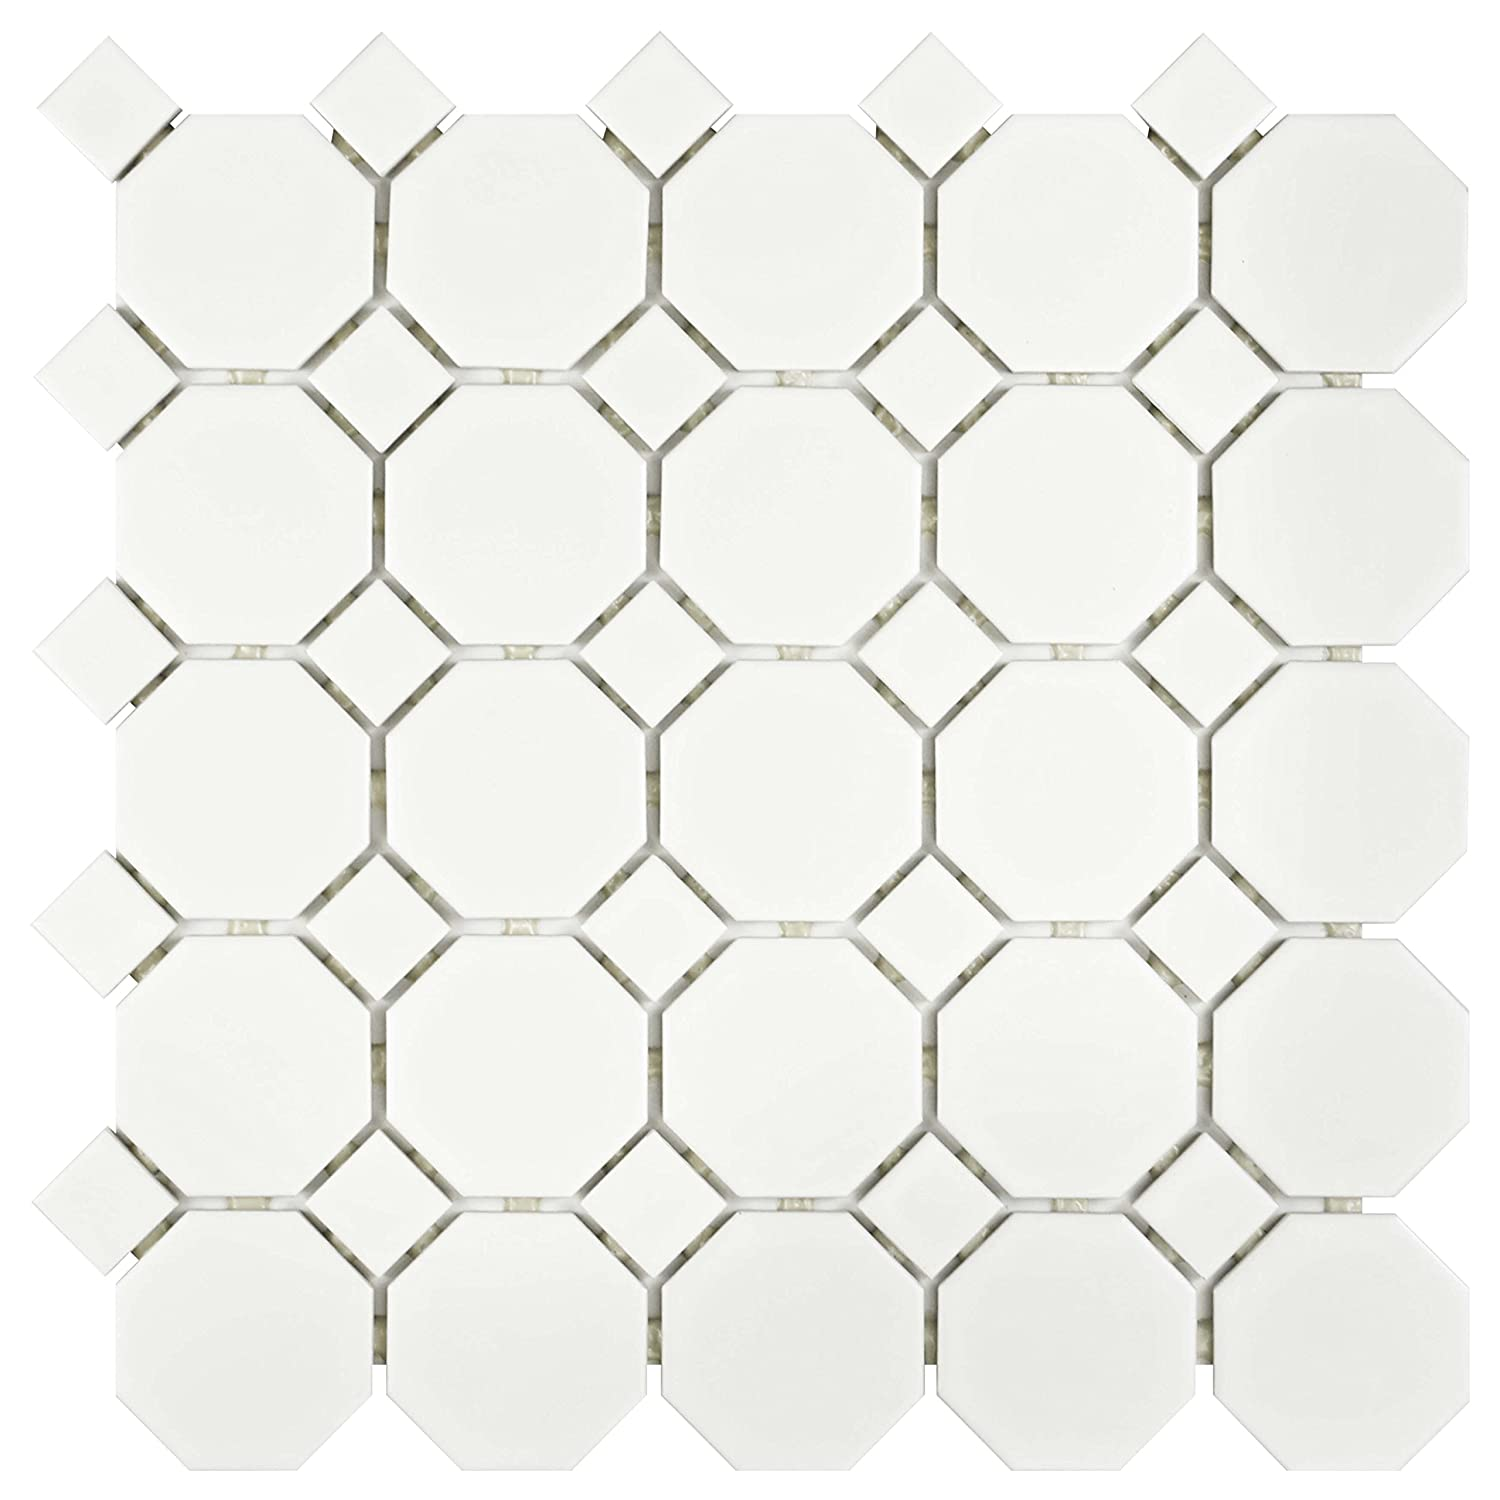 Somertile fxlmowwt retro octagon porcelain floor and wall tile somertile fxlmowwt retro octagon porcelain floor and wall tile 115 x 115 matte white ceramic tiles amazon dailygadgetfo Gallery